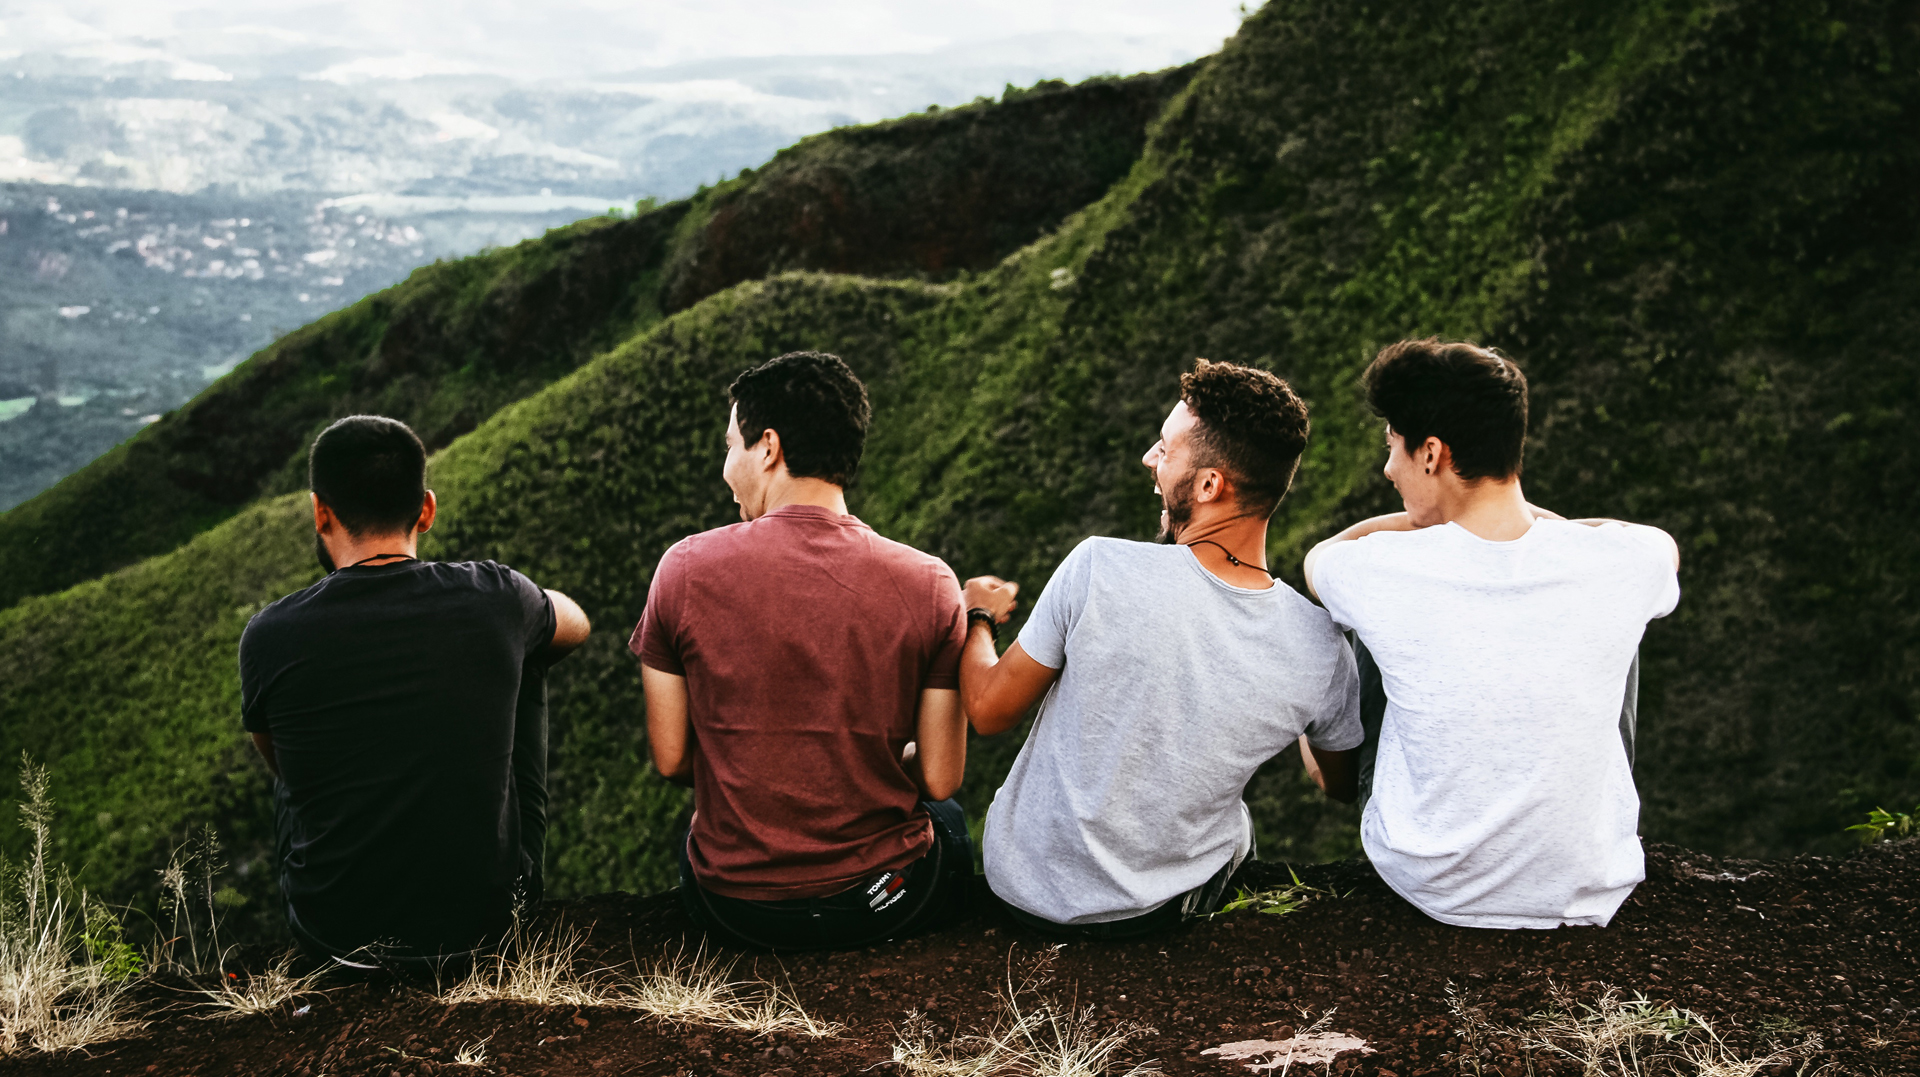 Four guys laugh while sitting on a ledge overlooking a valley